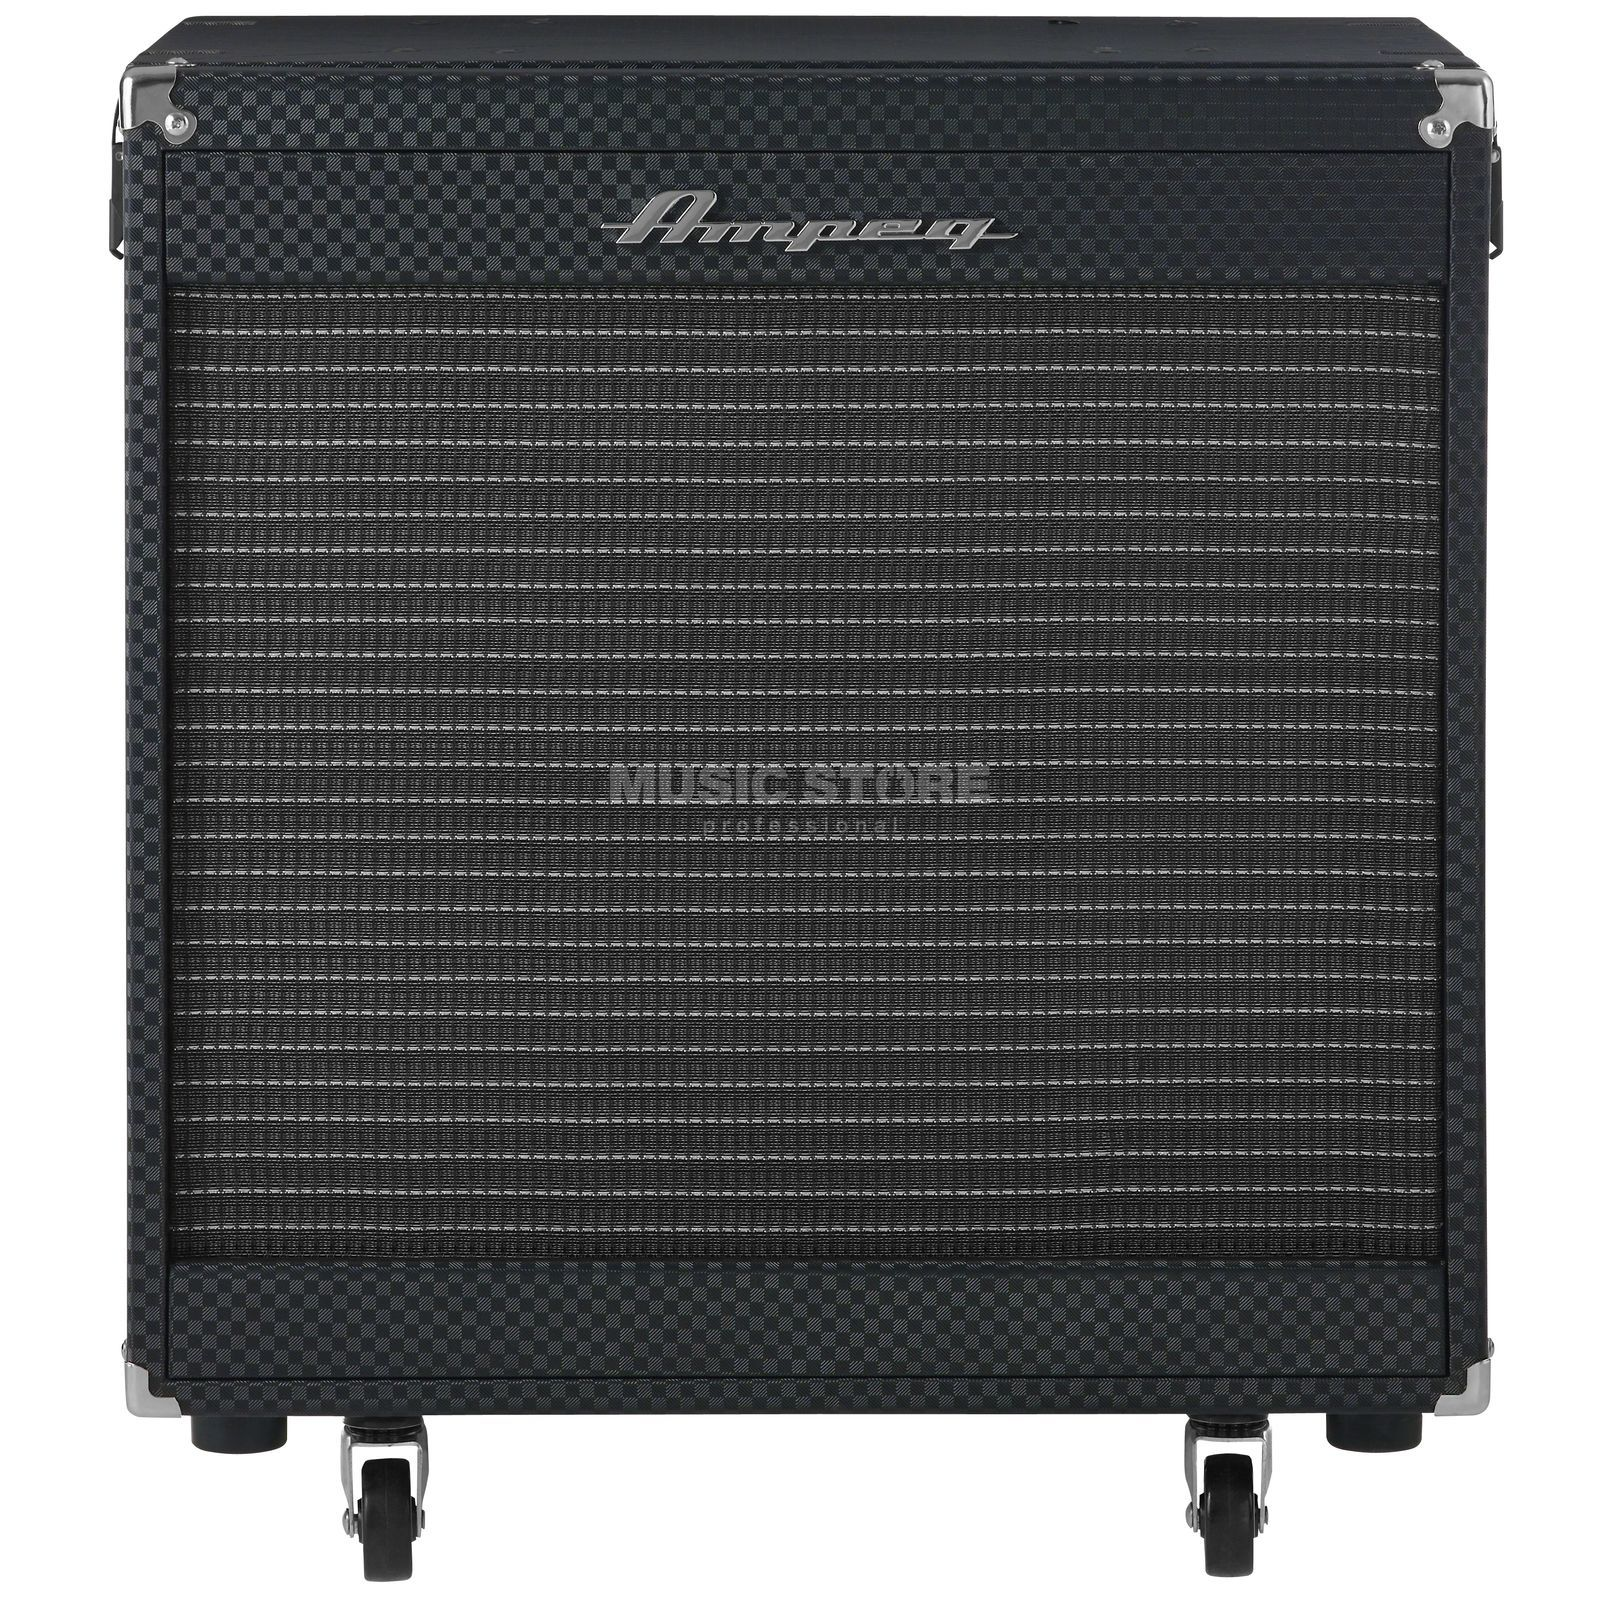 Ampeg PF-210HE Bass Guitar Amp Exten sion Cabinet   Product Image